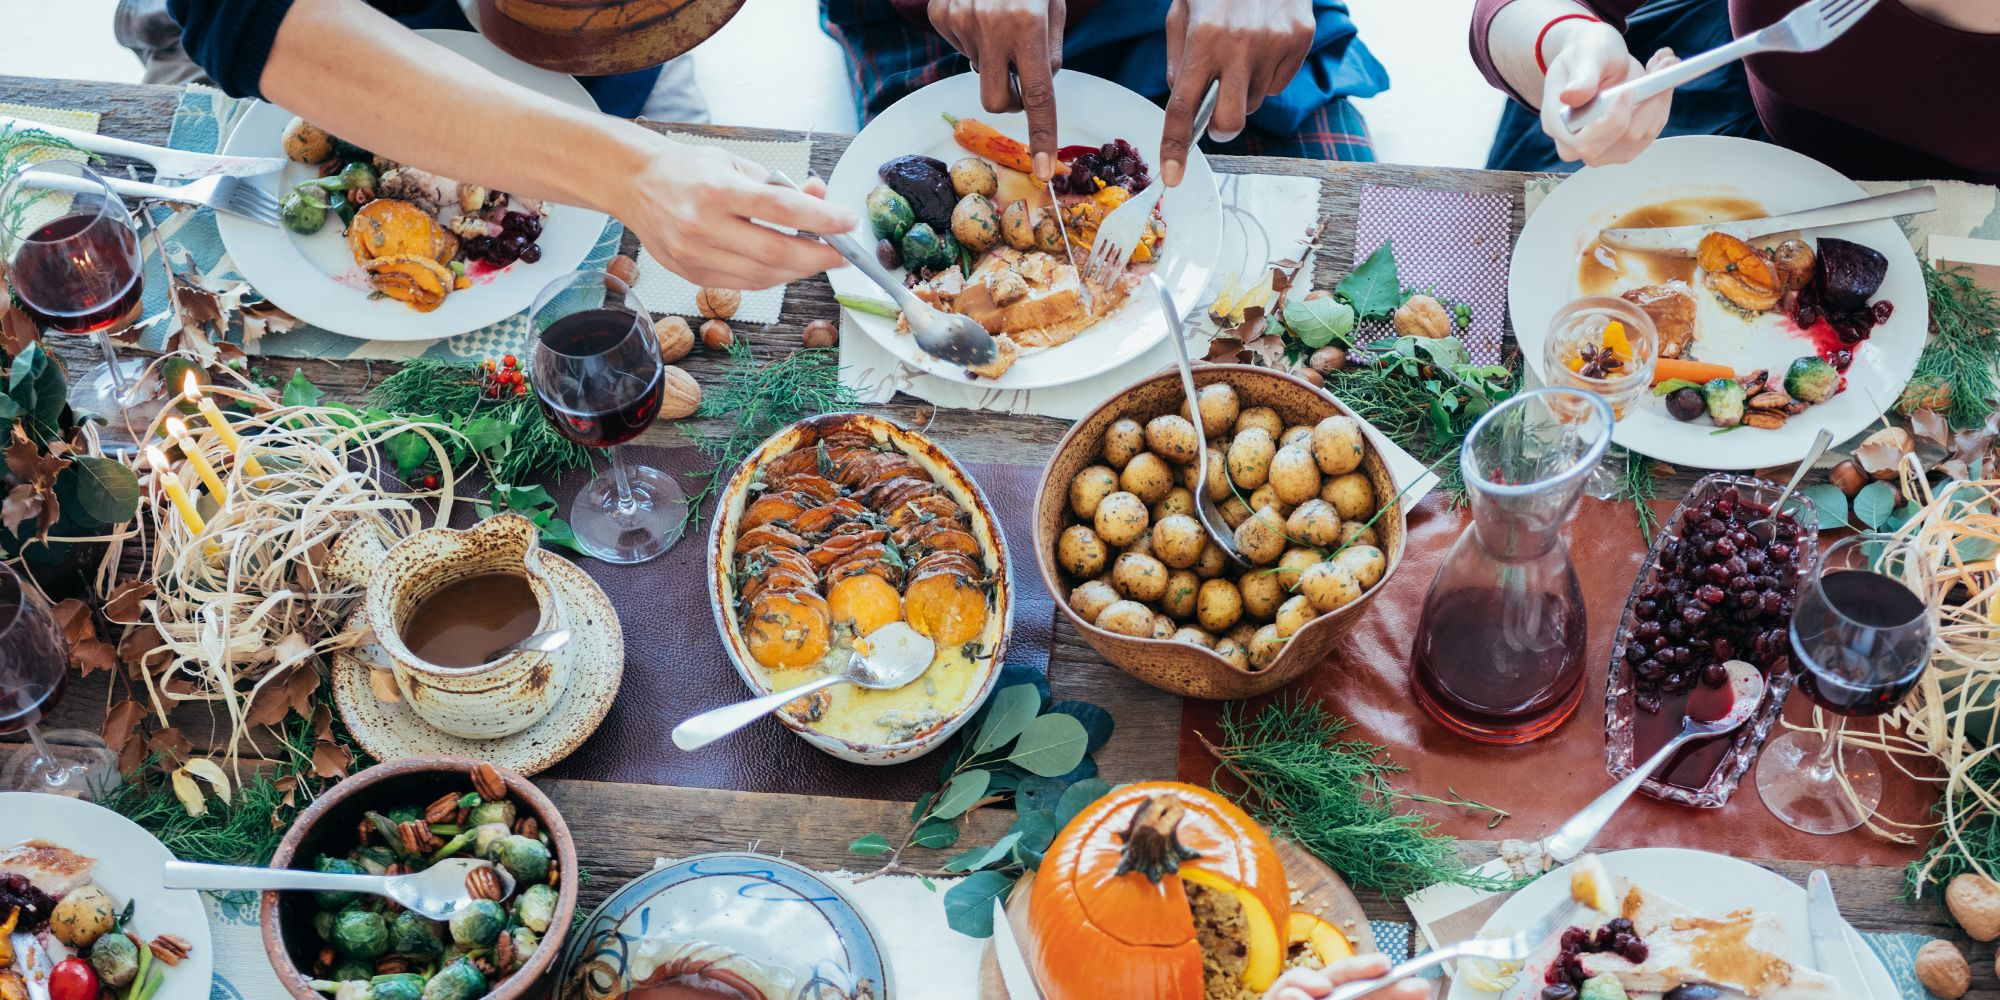 20 Best Thanksgiving Table Ideas for 2019 - Thanksgiving